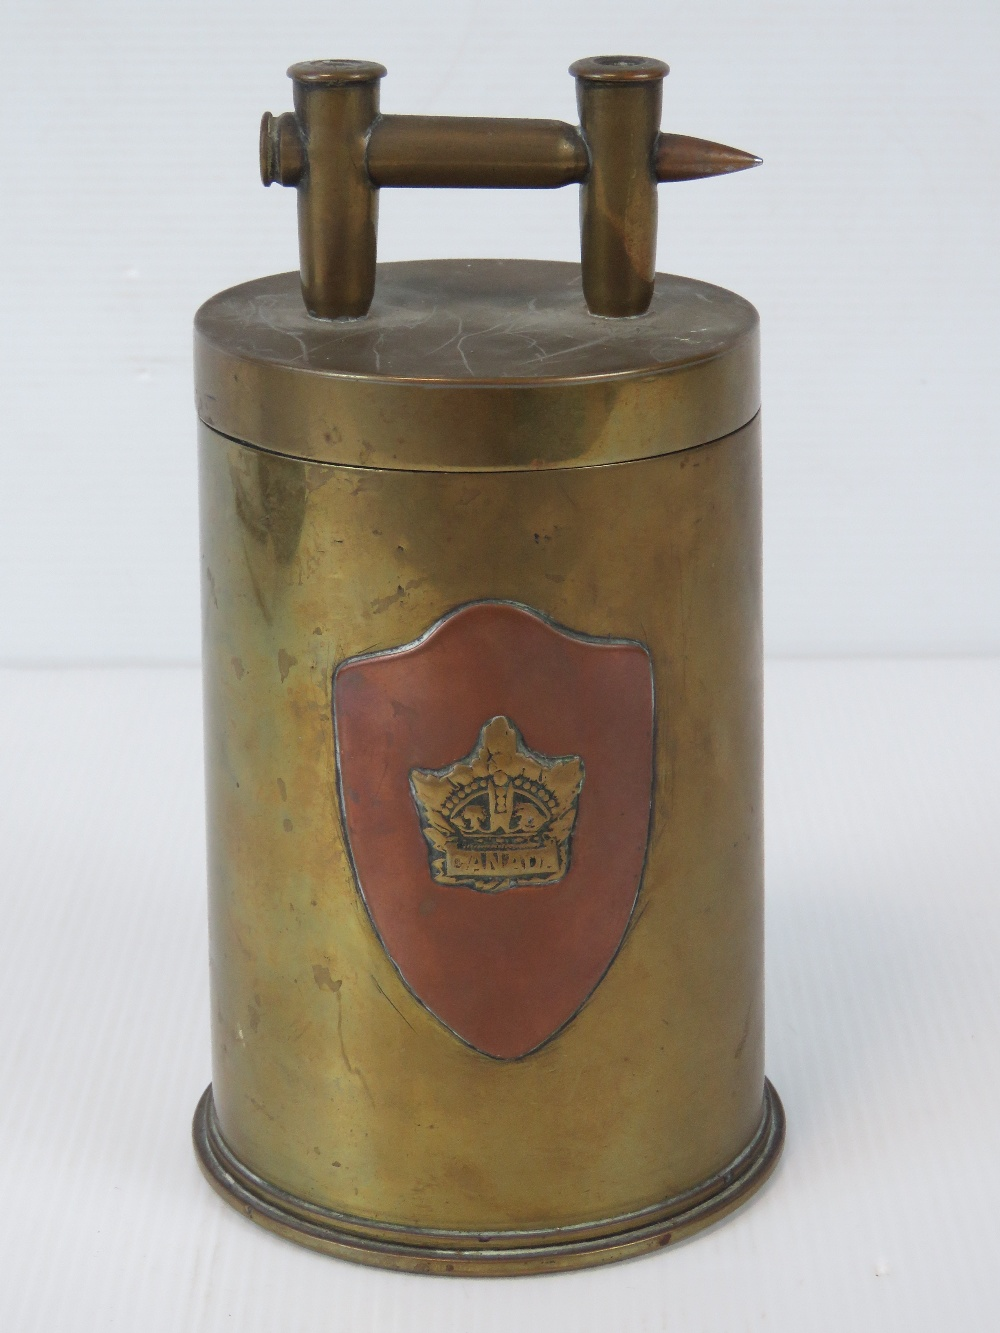 A trench Art shell case lidded pot havin - Image 3 of 5